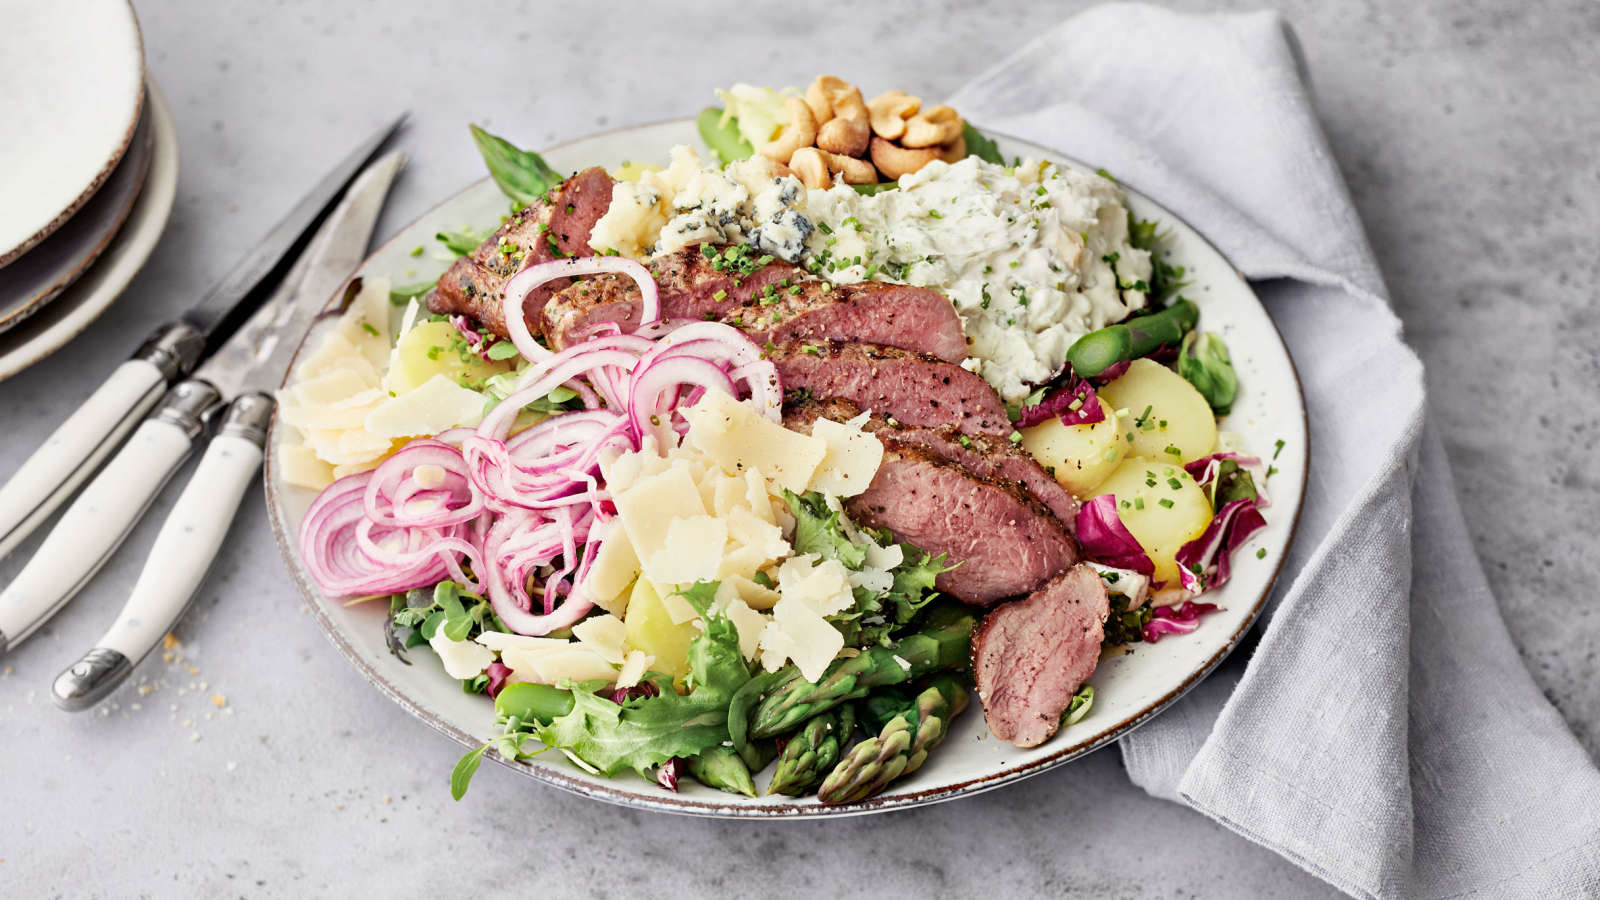 Steak salad karitsanifileestä